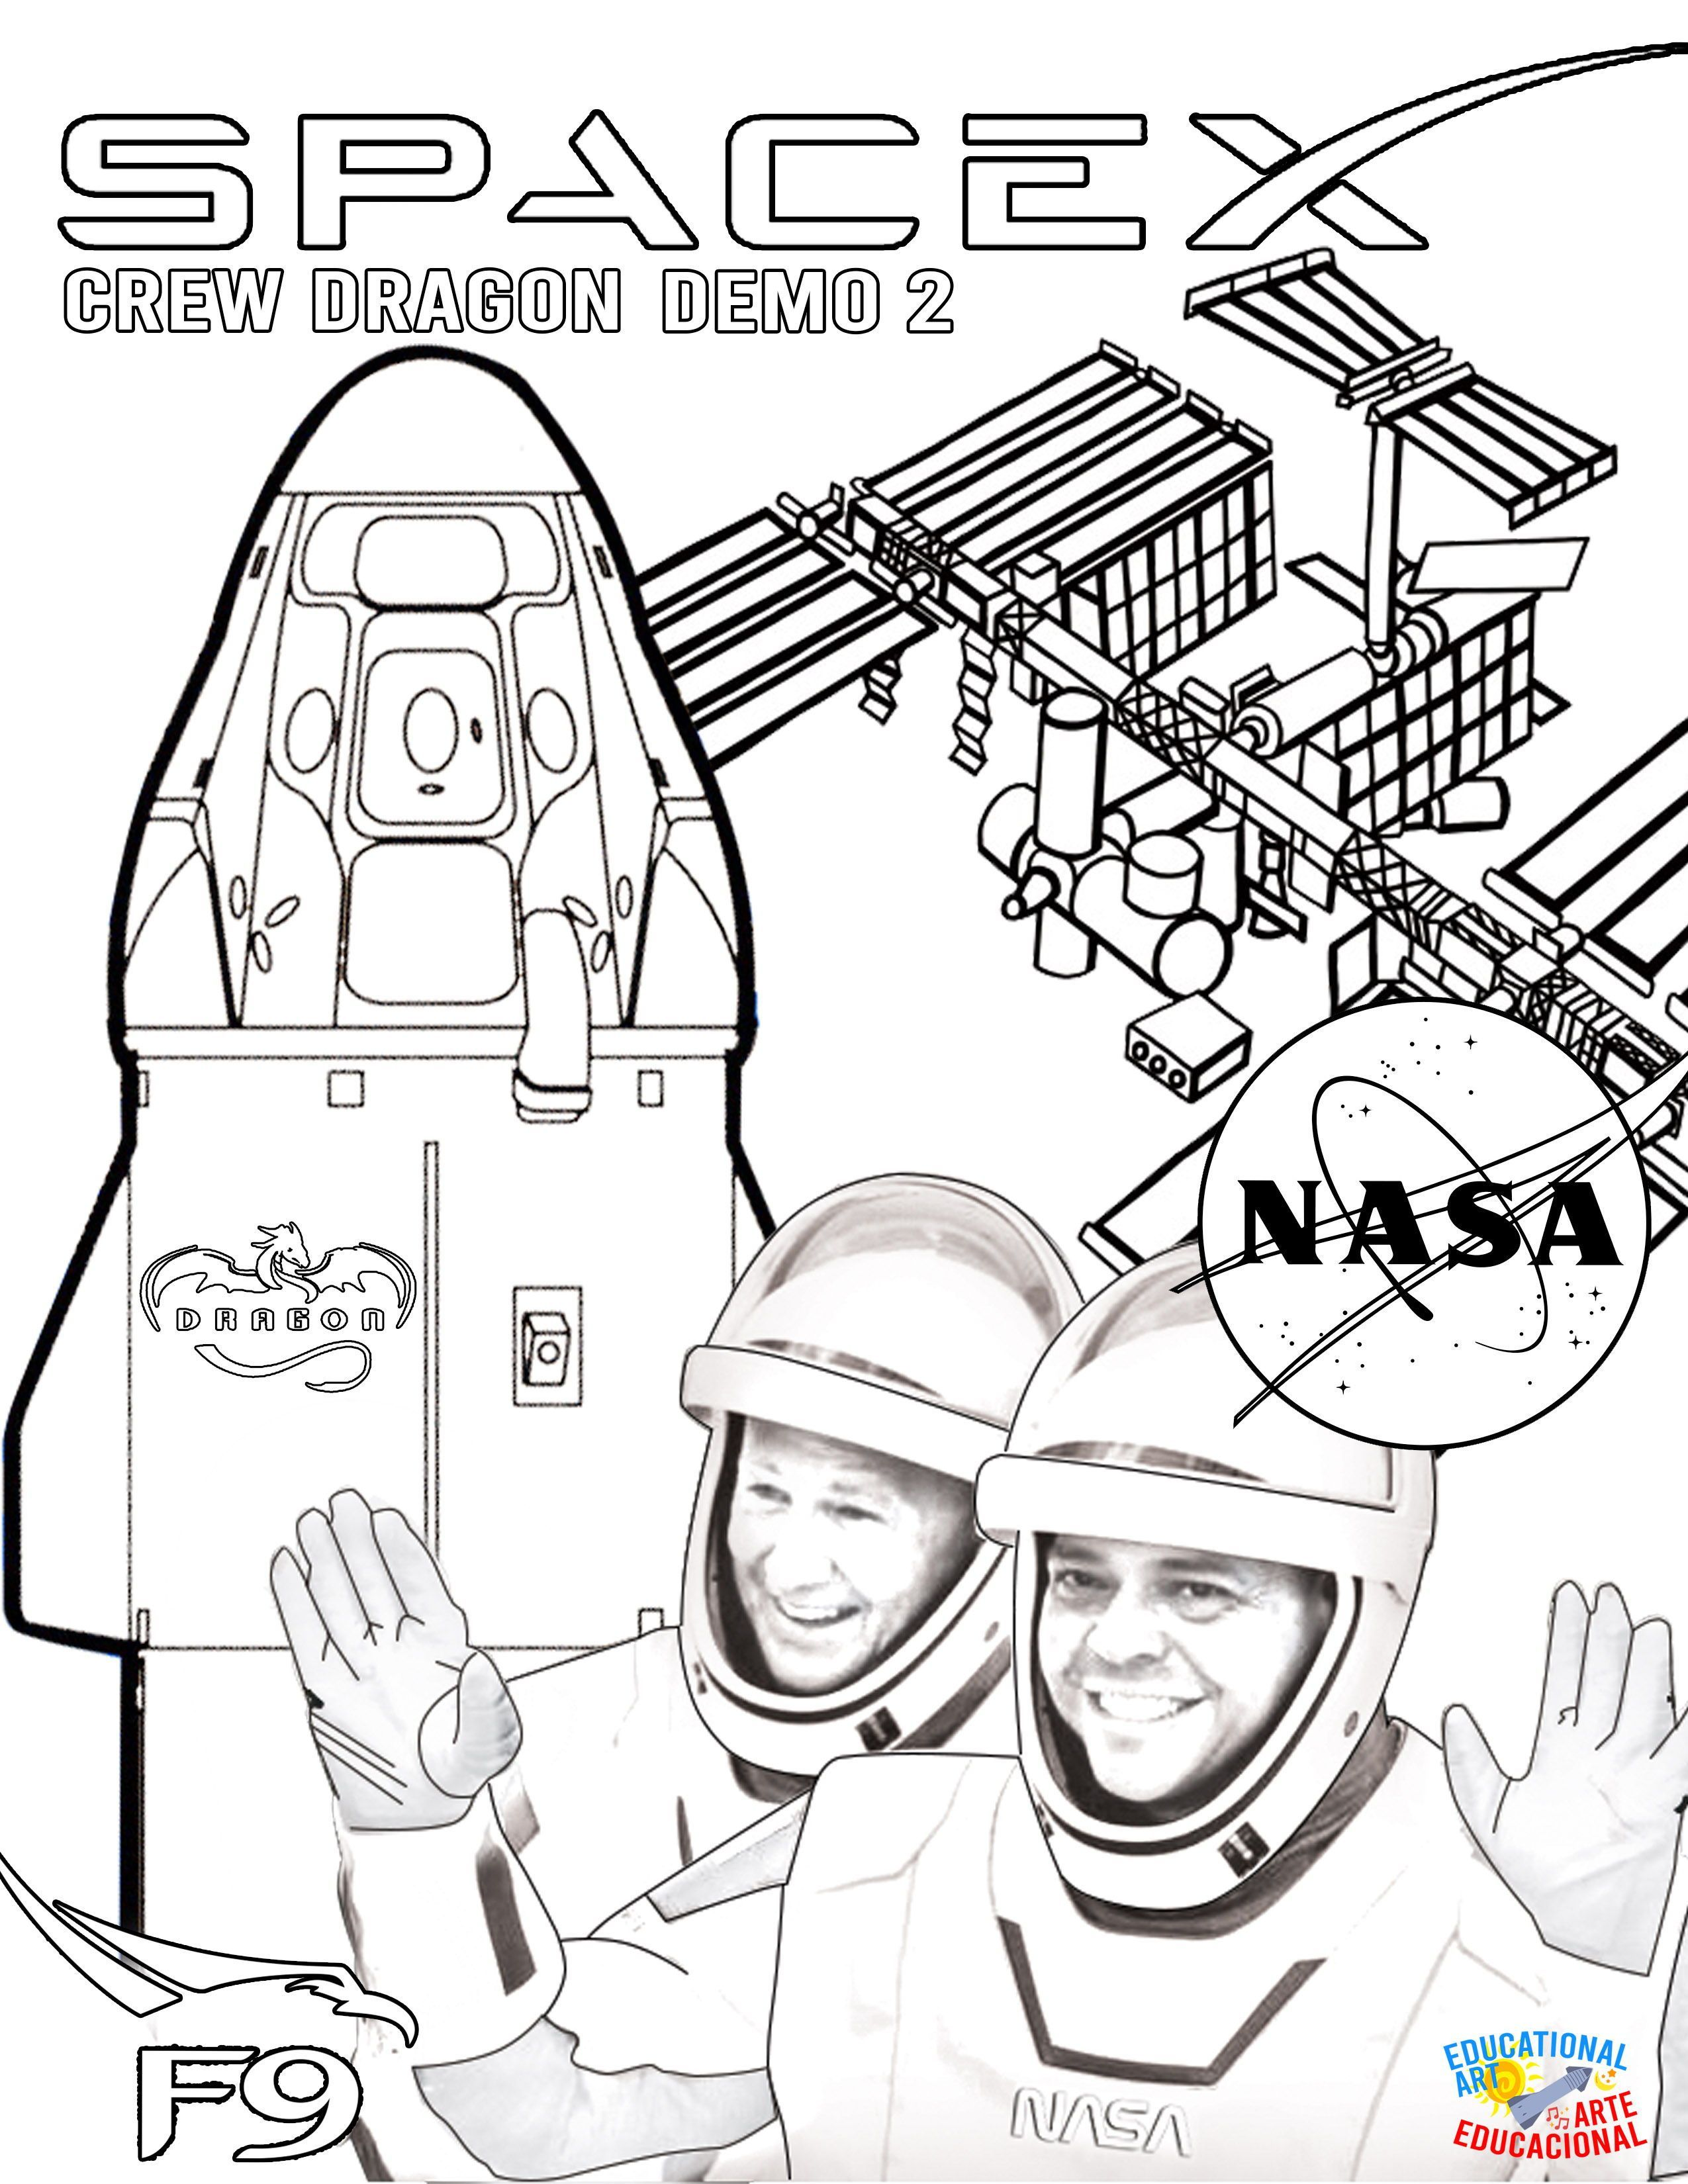 Coloring Page Crew Dragon Demo 2 Lauch Approach And Docking Highlights I Love Pura Vida Coloring Pages International Space Station Dragon